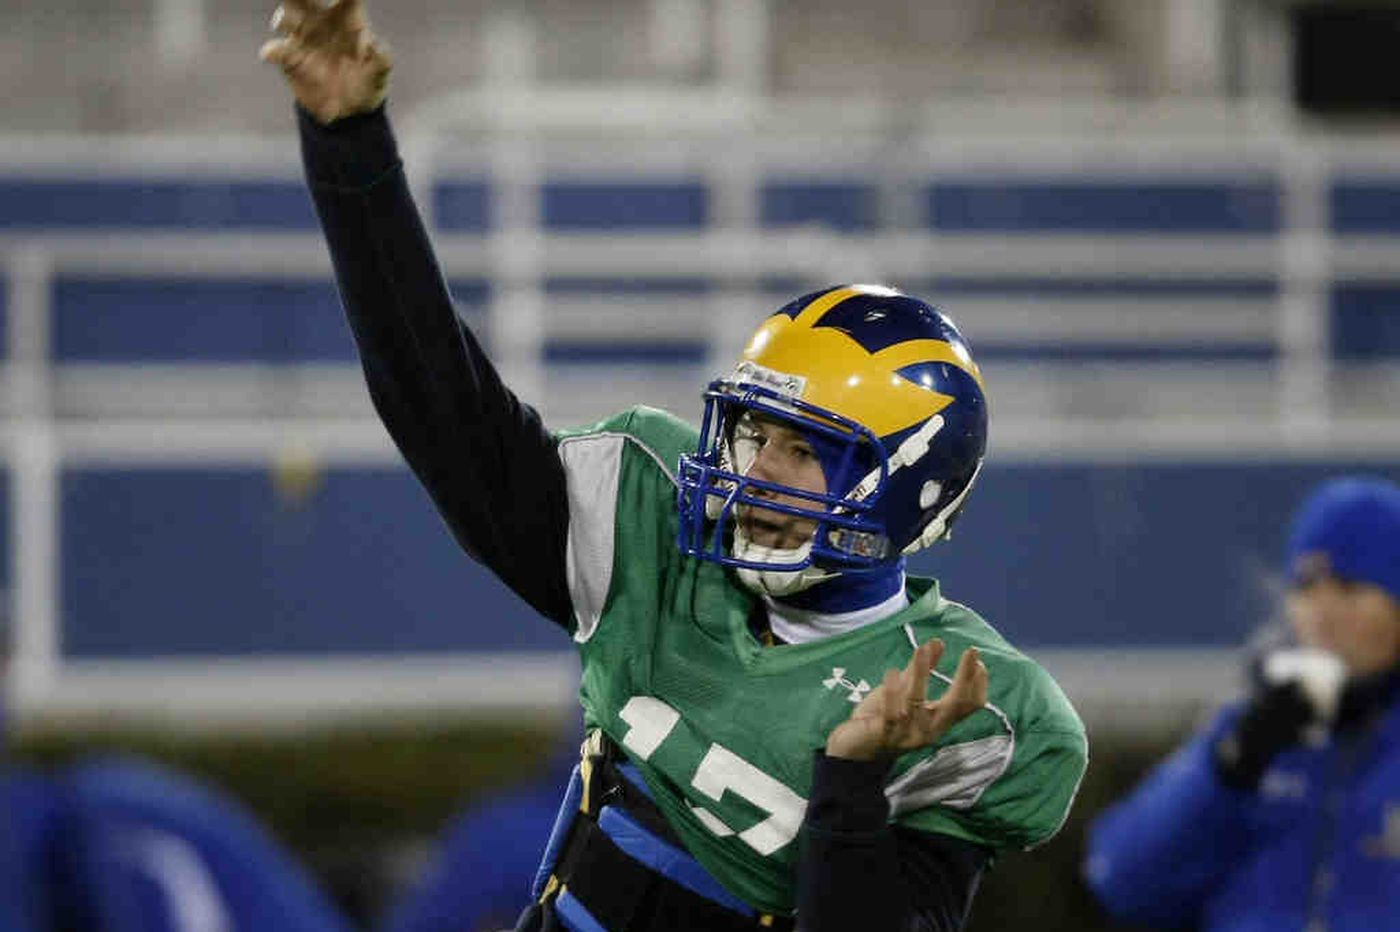 For Delaware's Devlin, no regrets about leaving Penn State